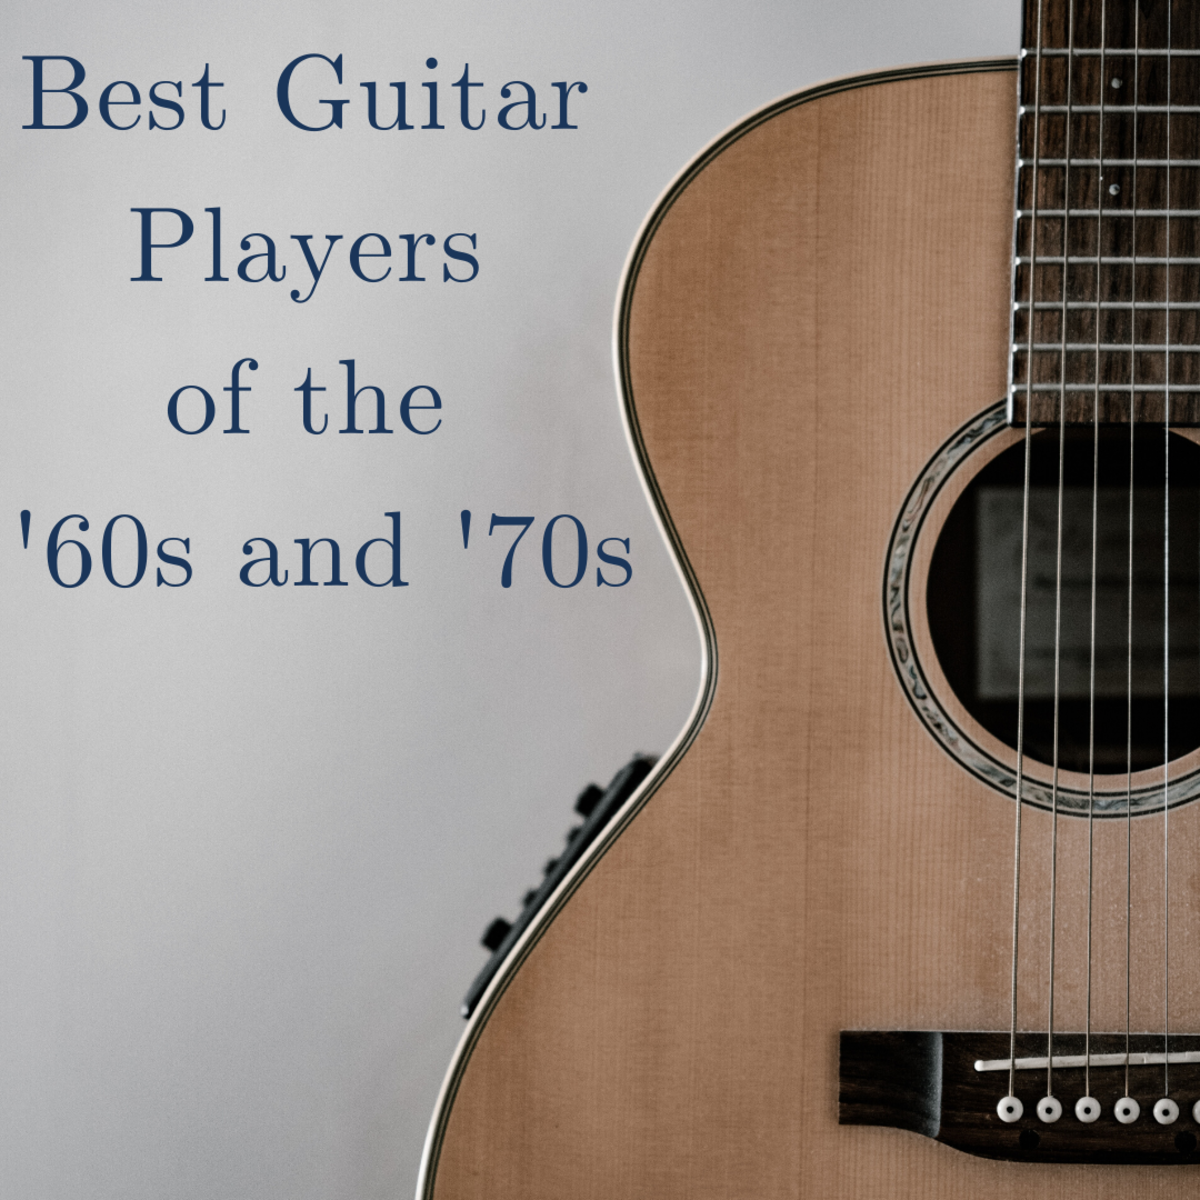 Interesting facts about guitar players